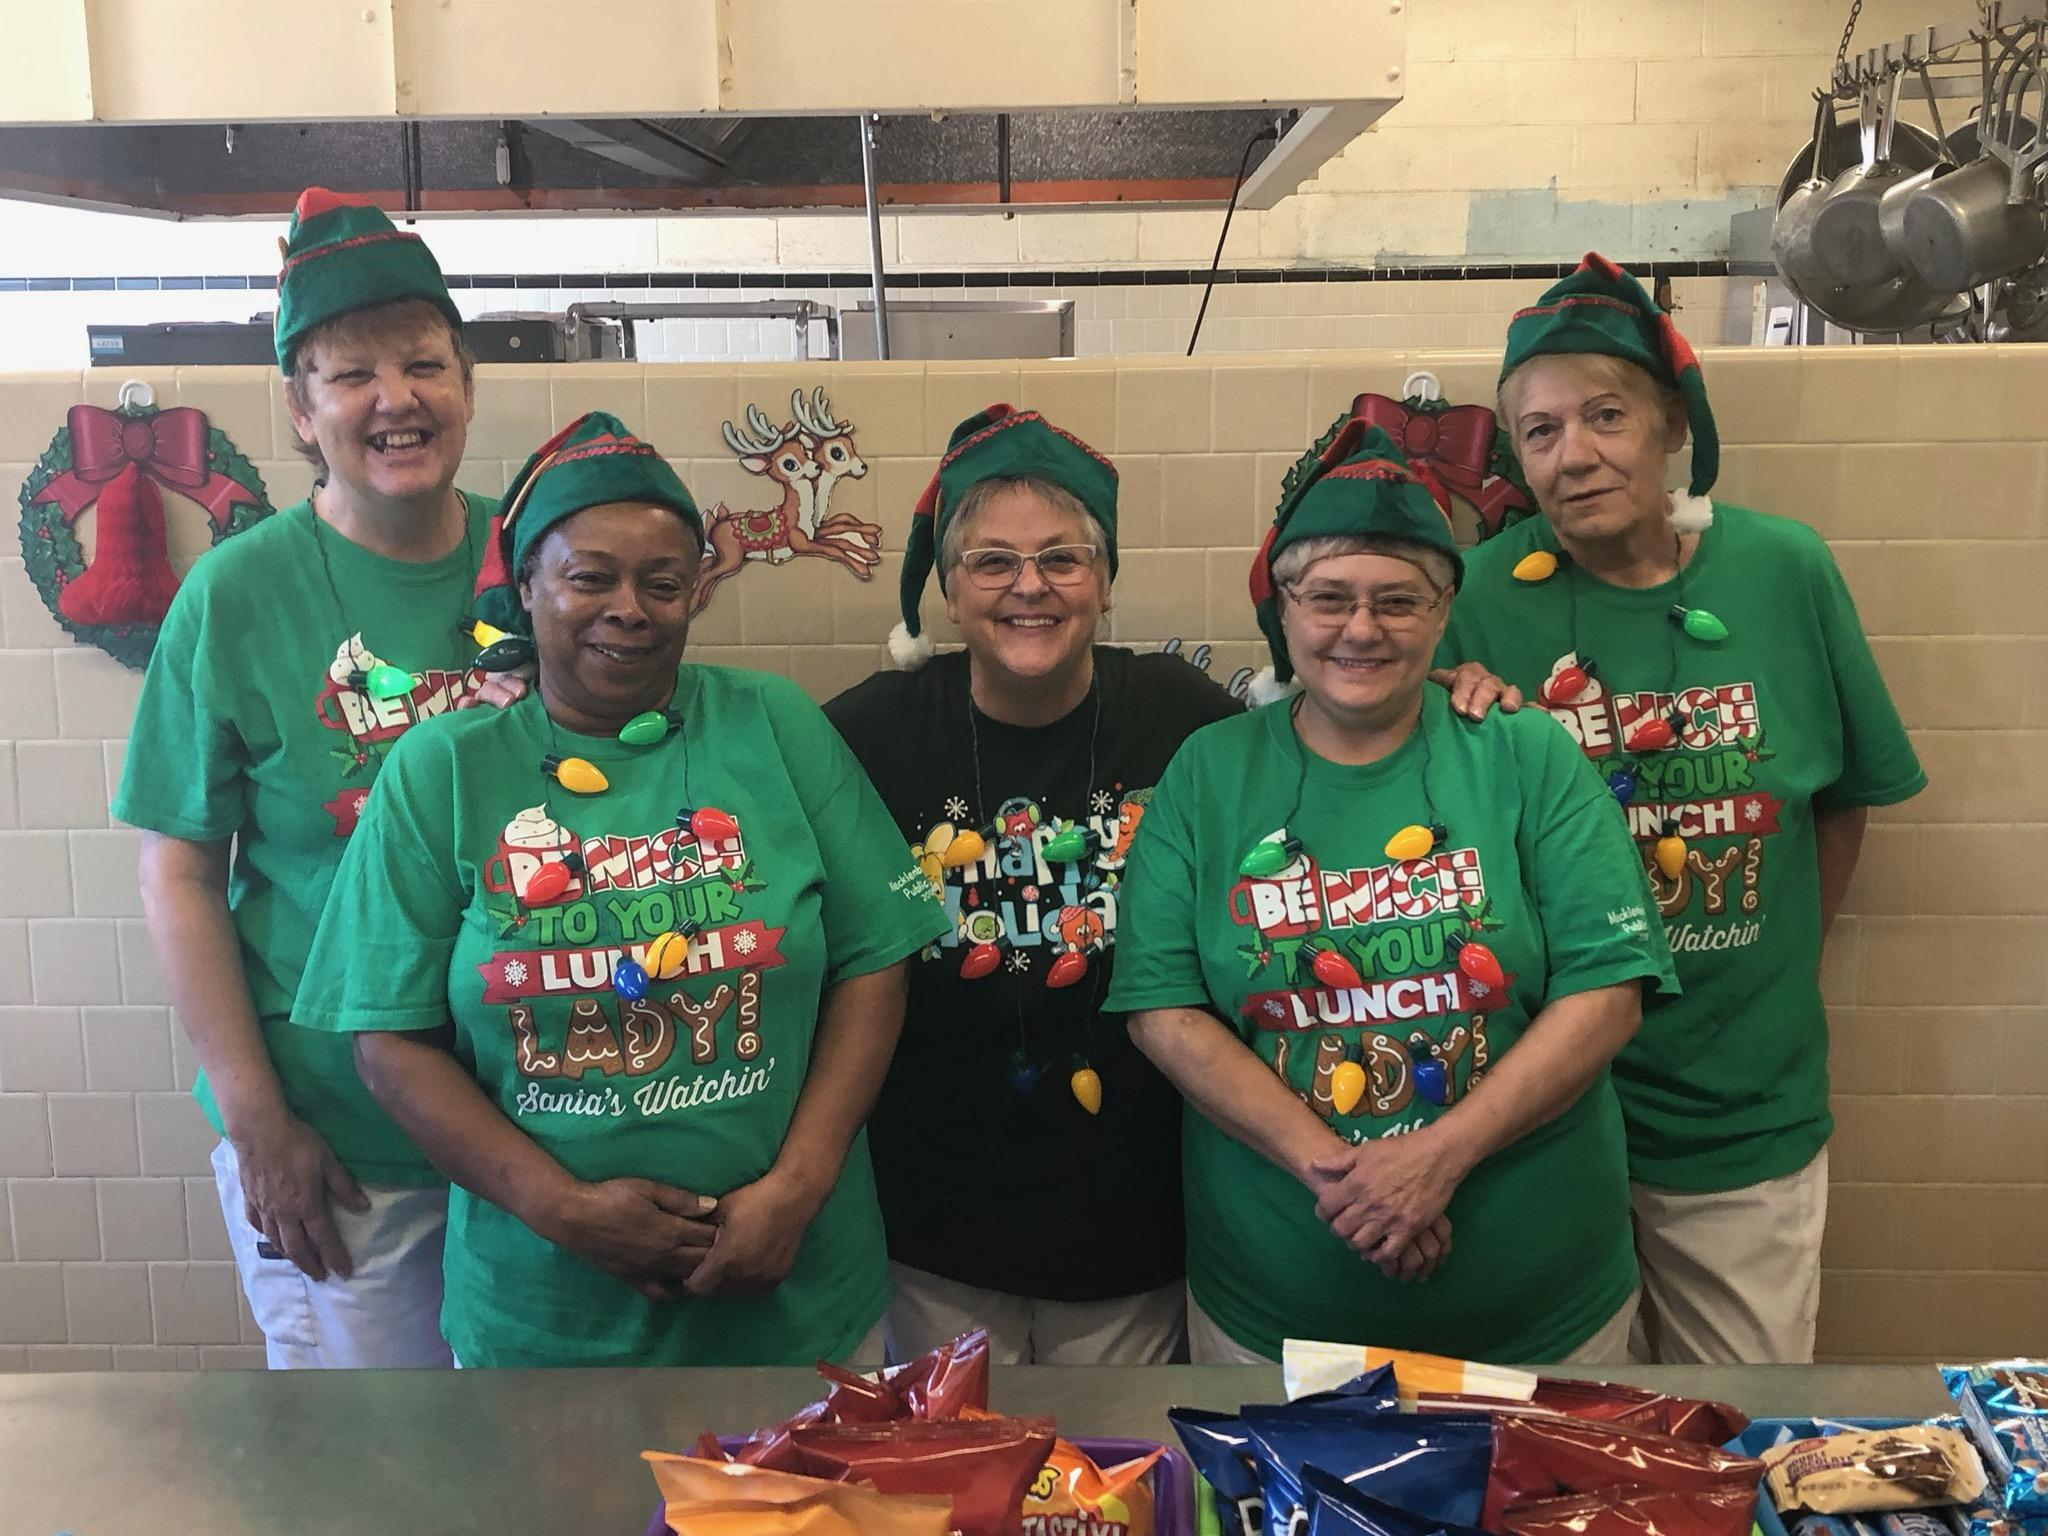 La Crosse Elementary Food Service Staff dressing Festive for the Holidays!